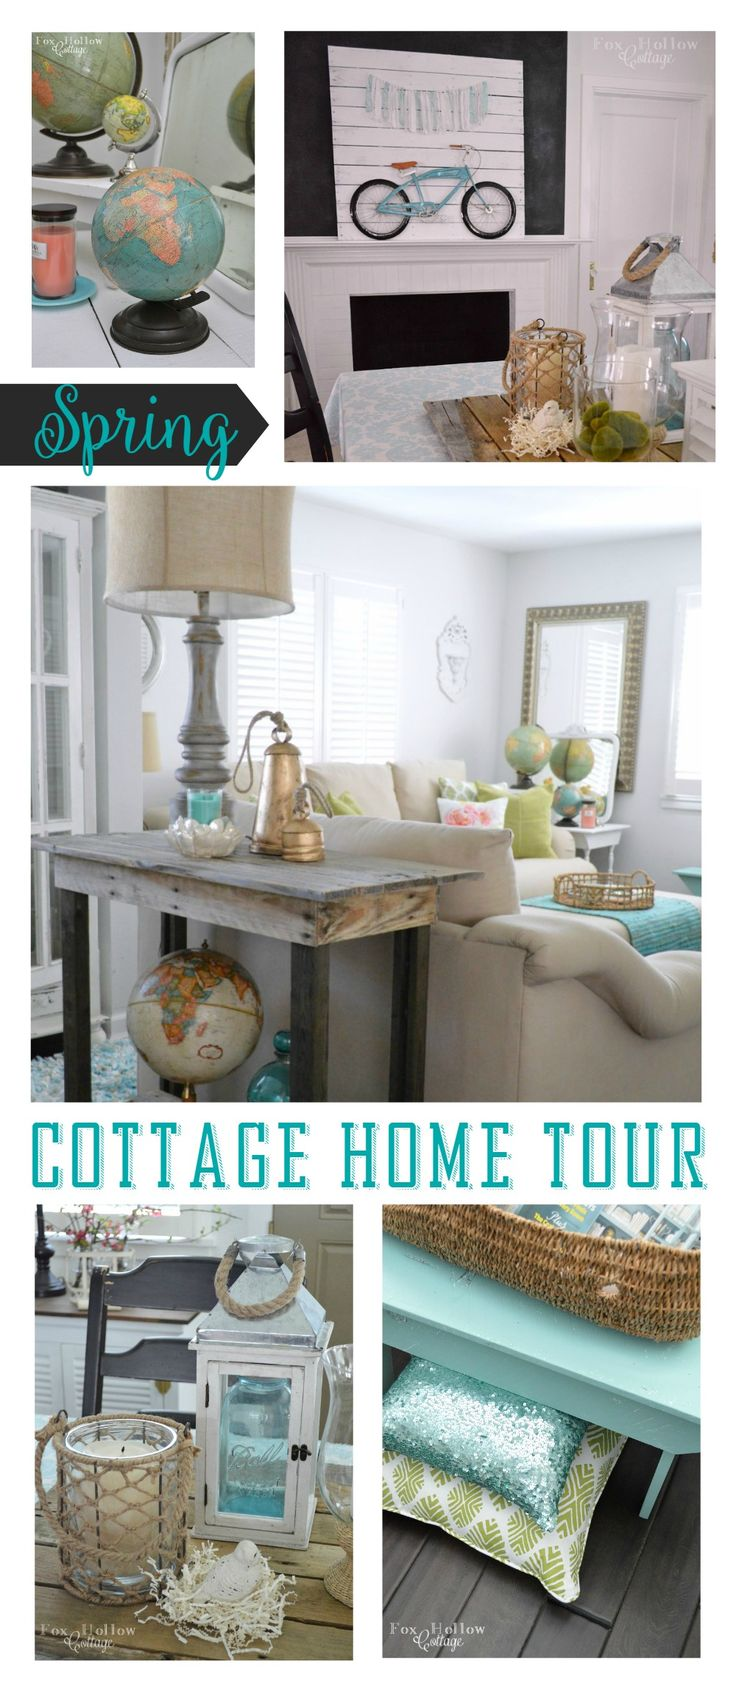 shocking rustic shabby vintage concept and chic ideas trend bathroom insider image of cottage decor